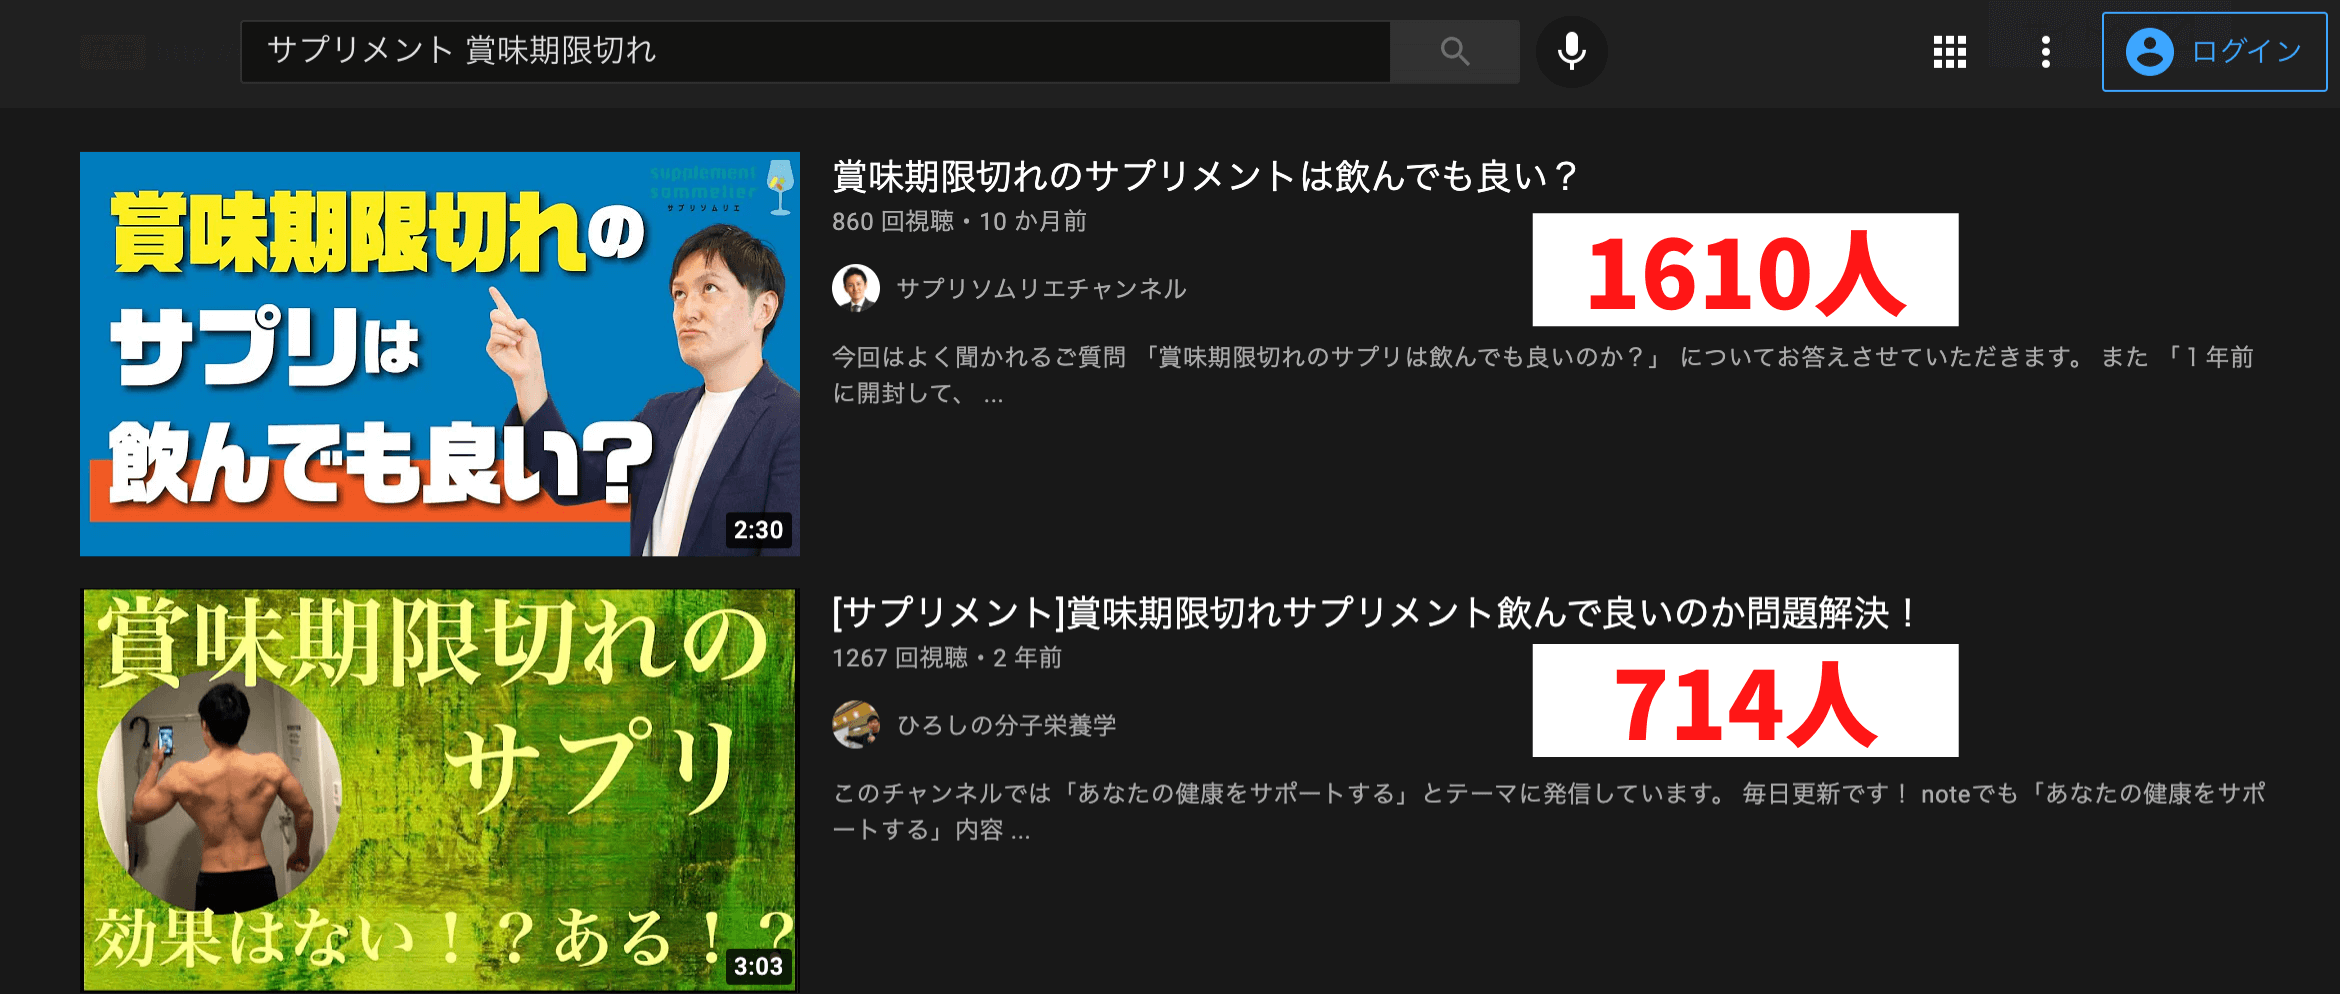 youtube-supplement expired-top display